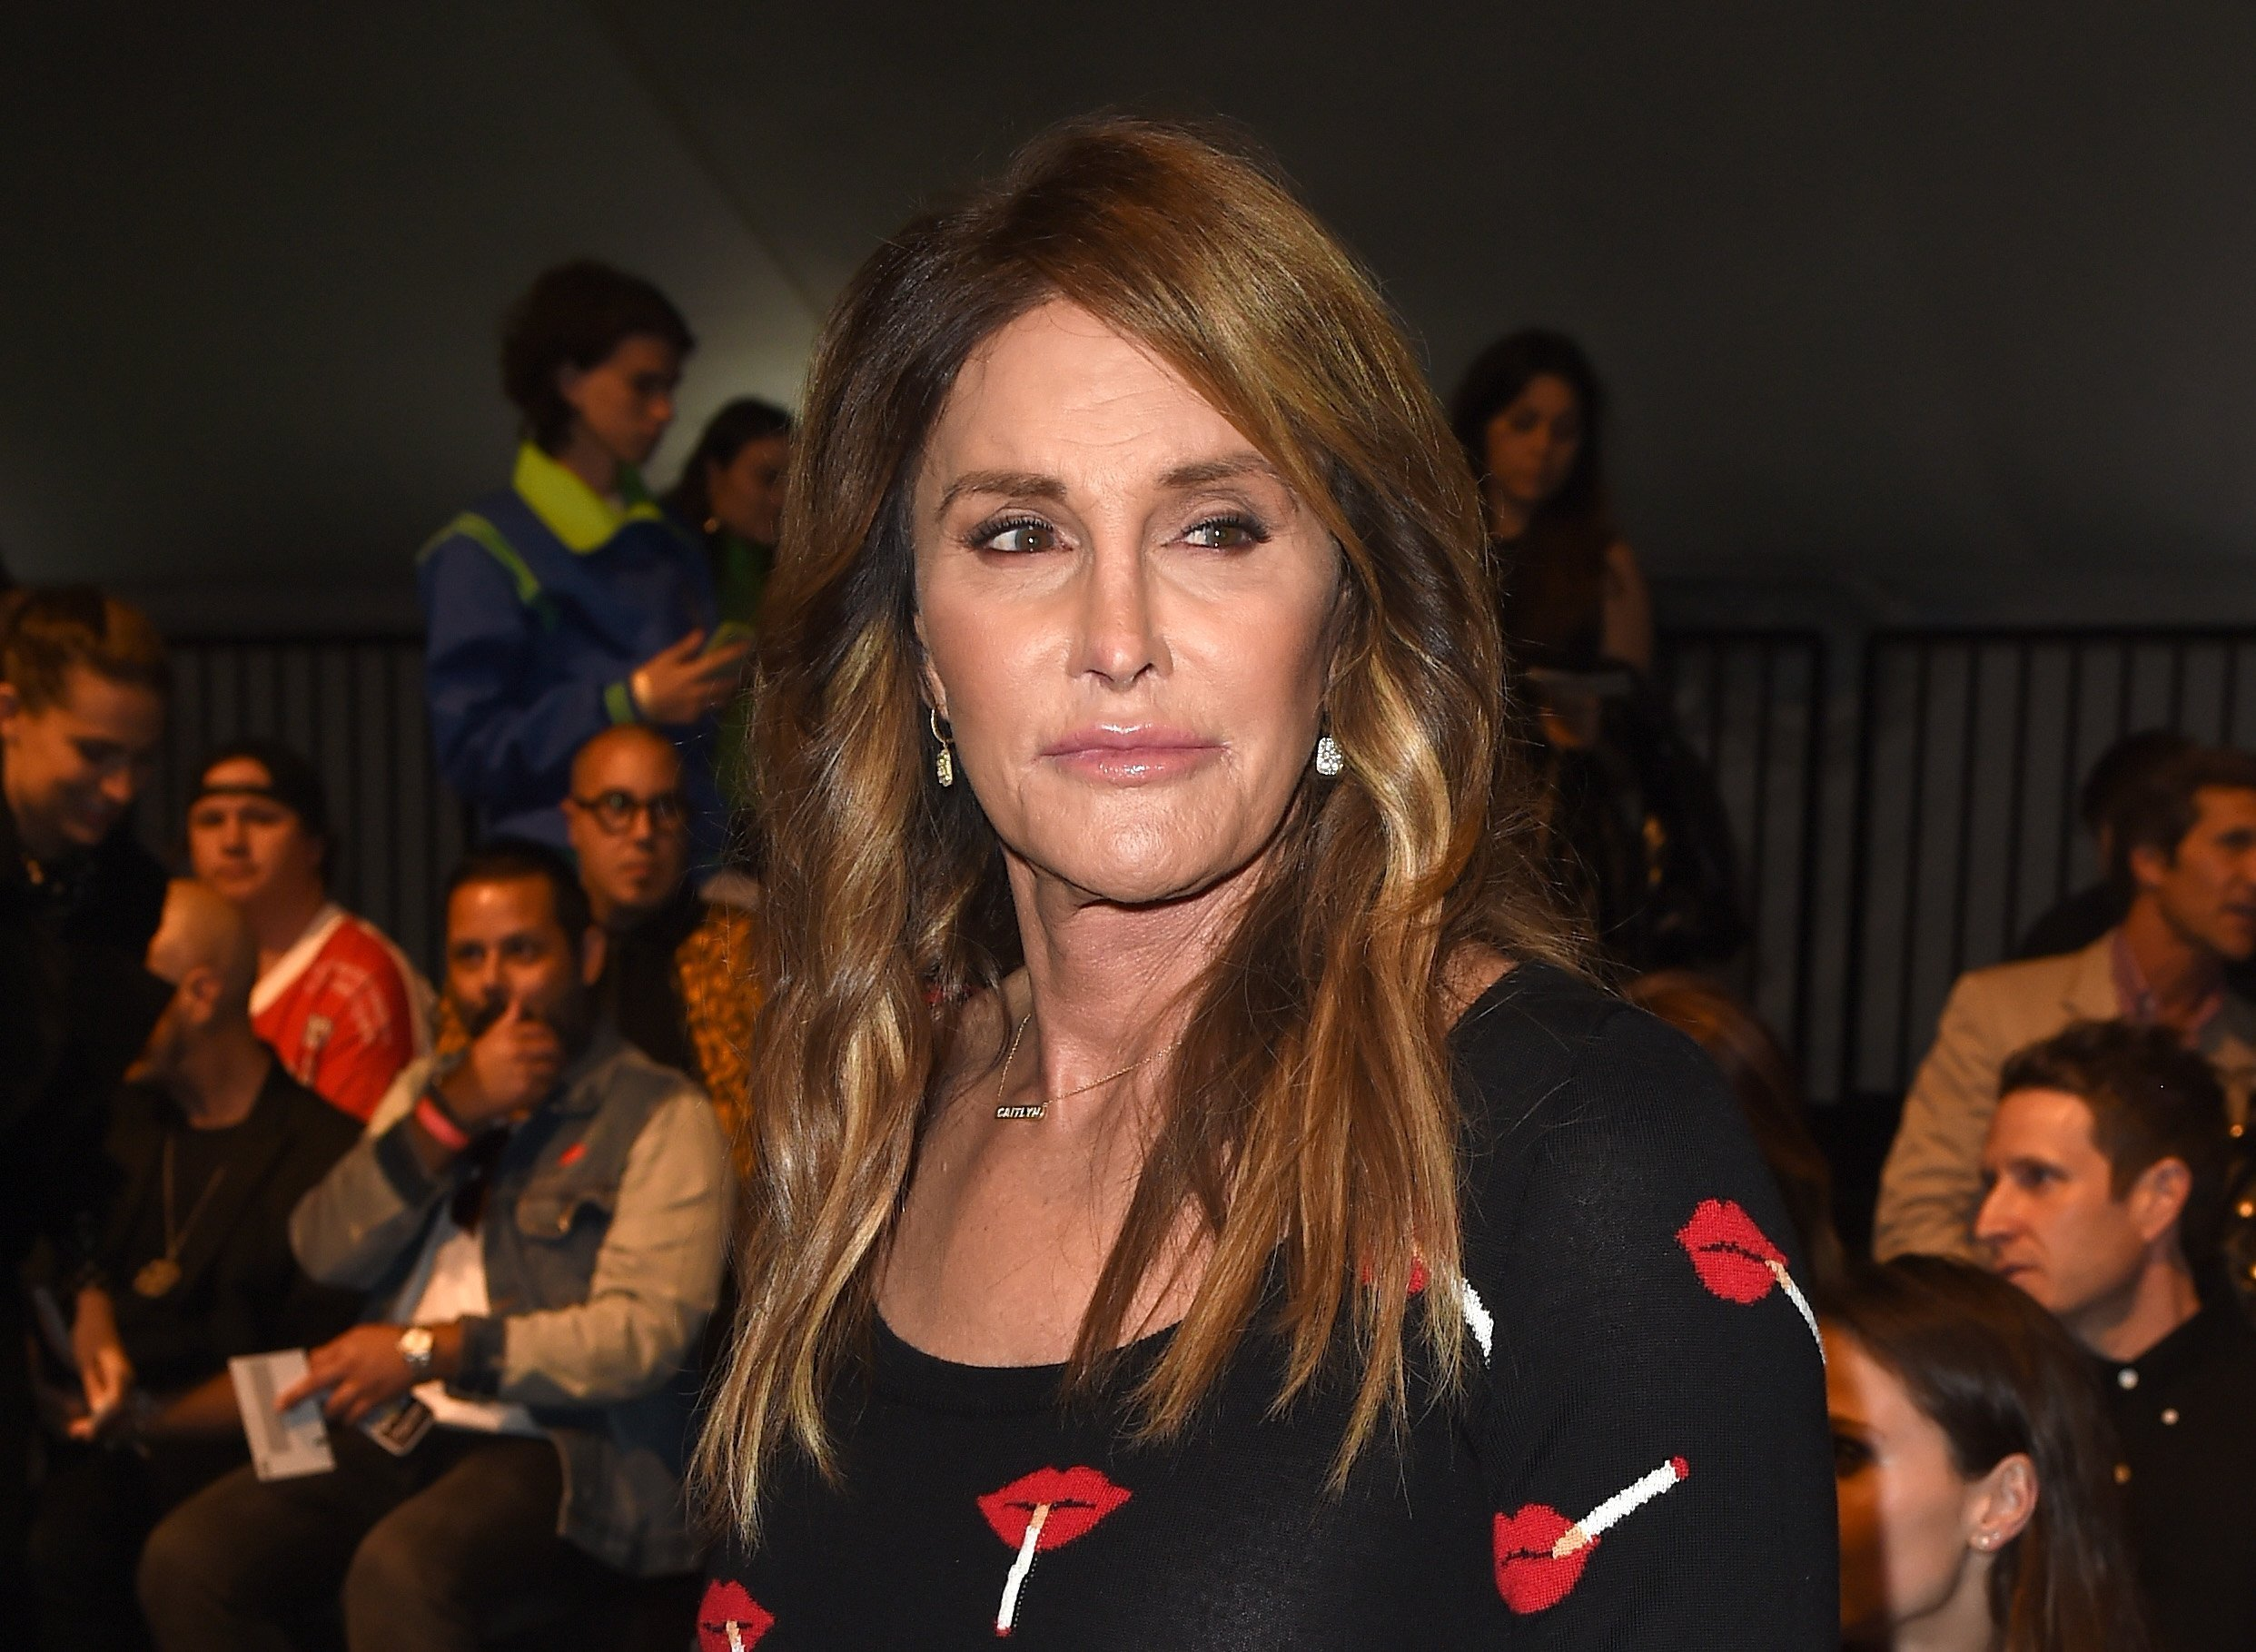 Caitlyn Jenner attends the Moschino Spring/Summer 17 Menswear and Women's Resort Collection during MADE LA on June 10, 2016 | Photo: GettyImages